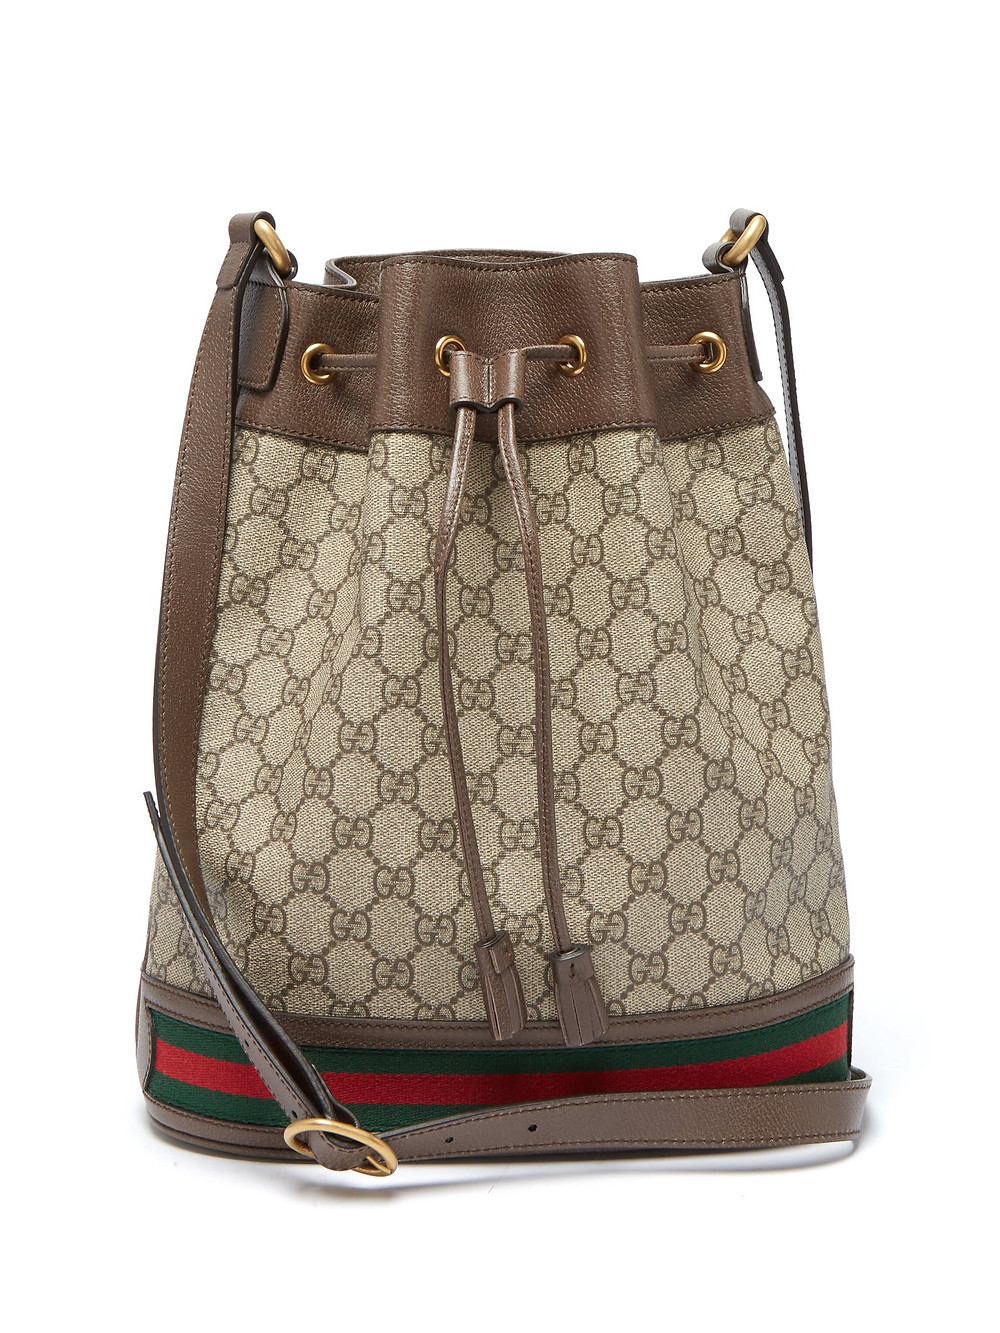 Valentino Grand Plage large canvas tote bag